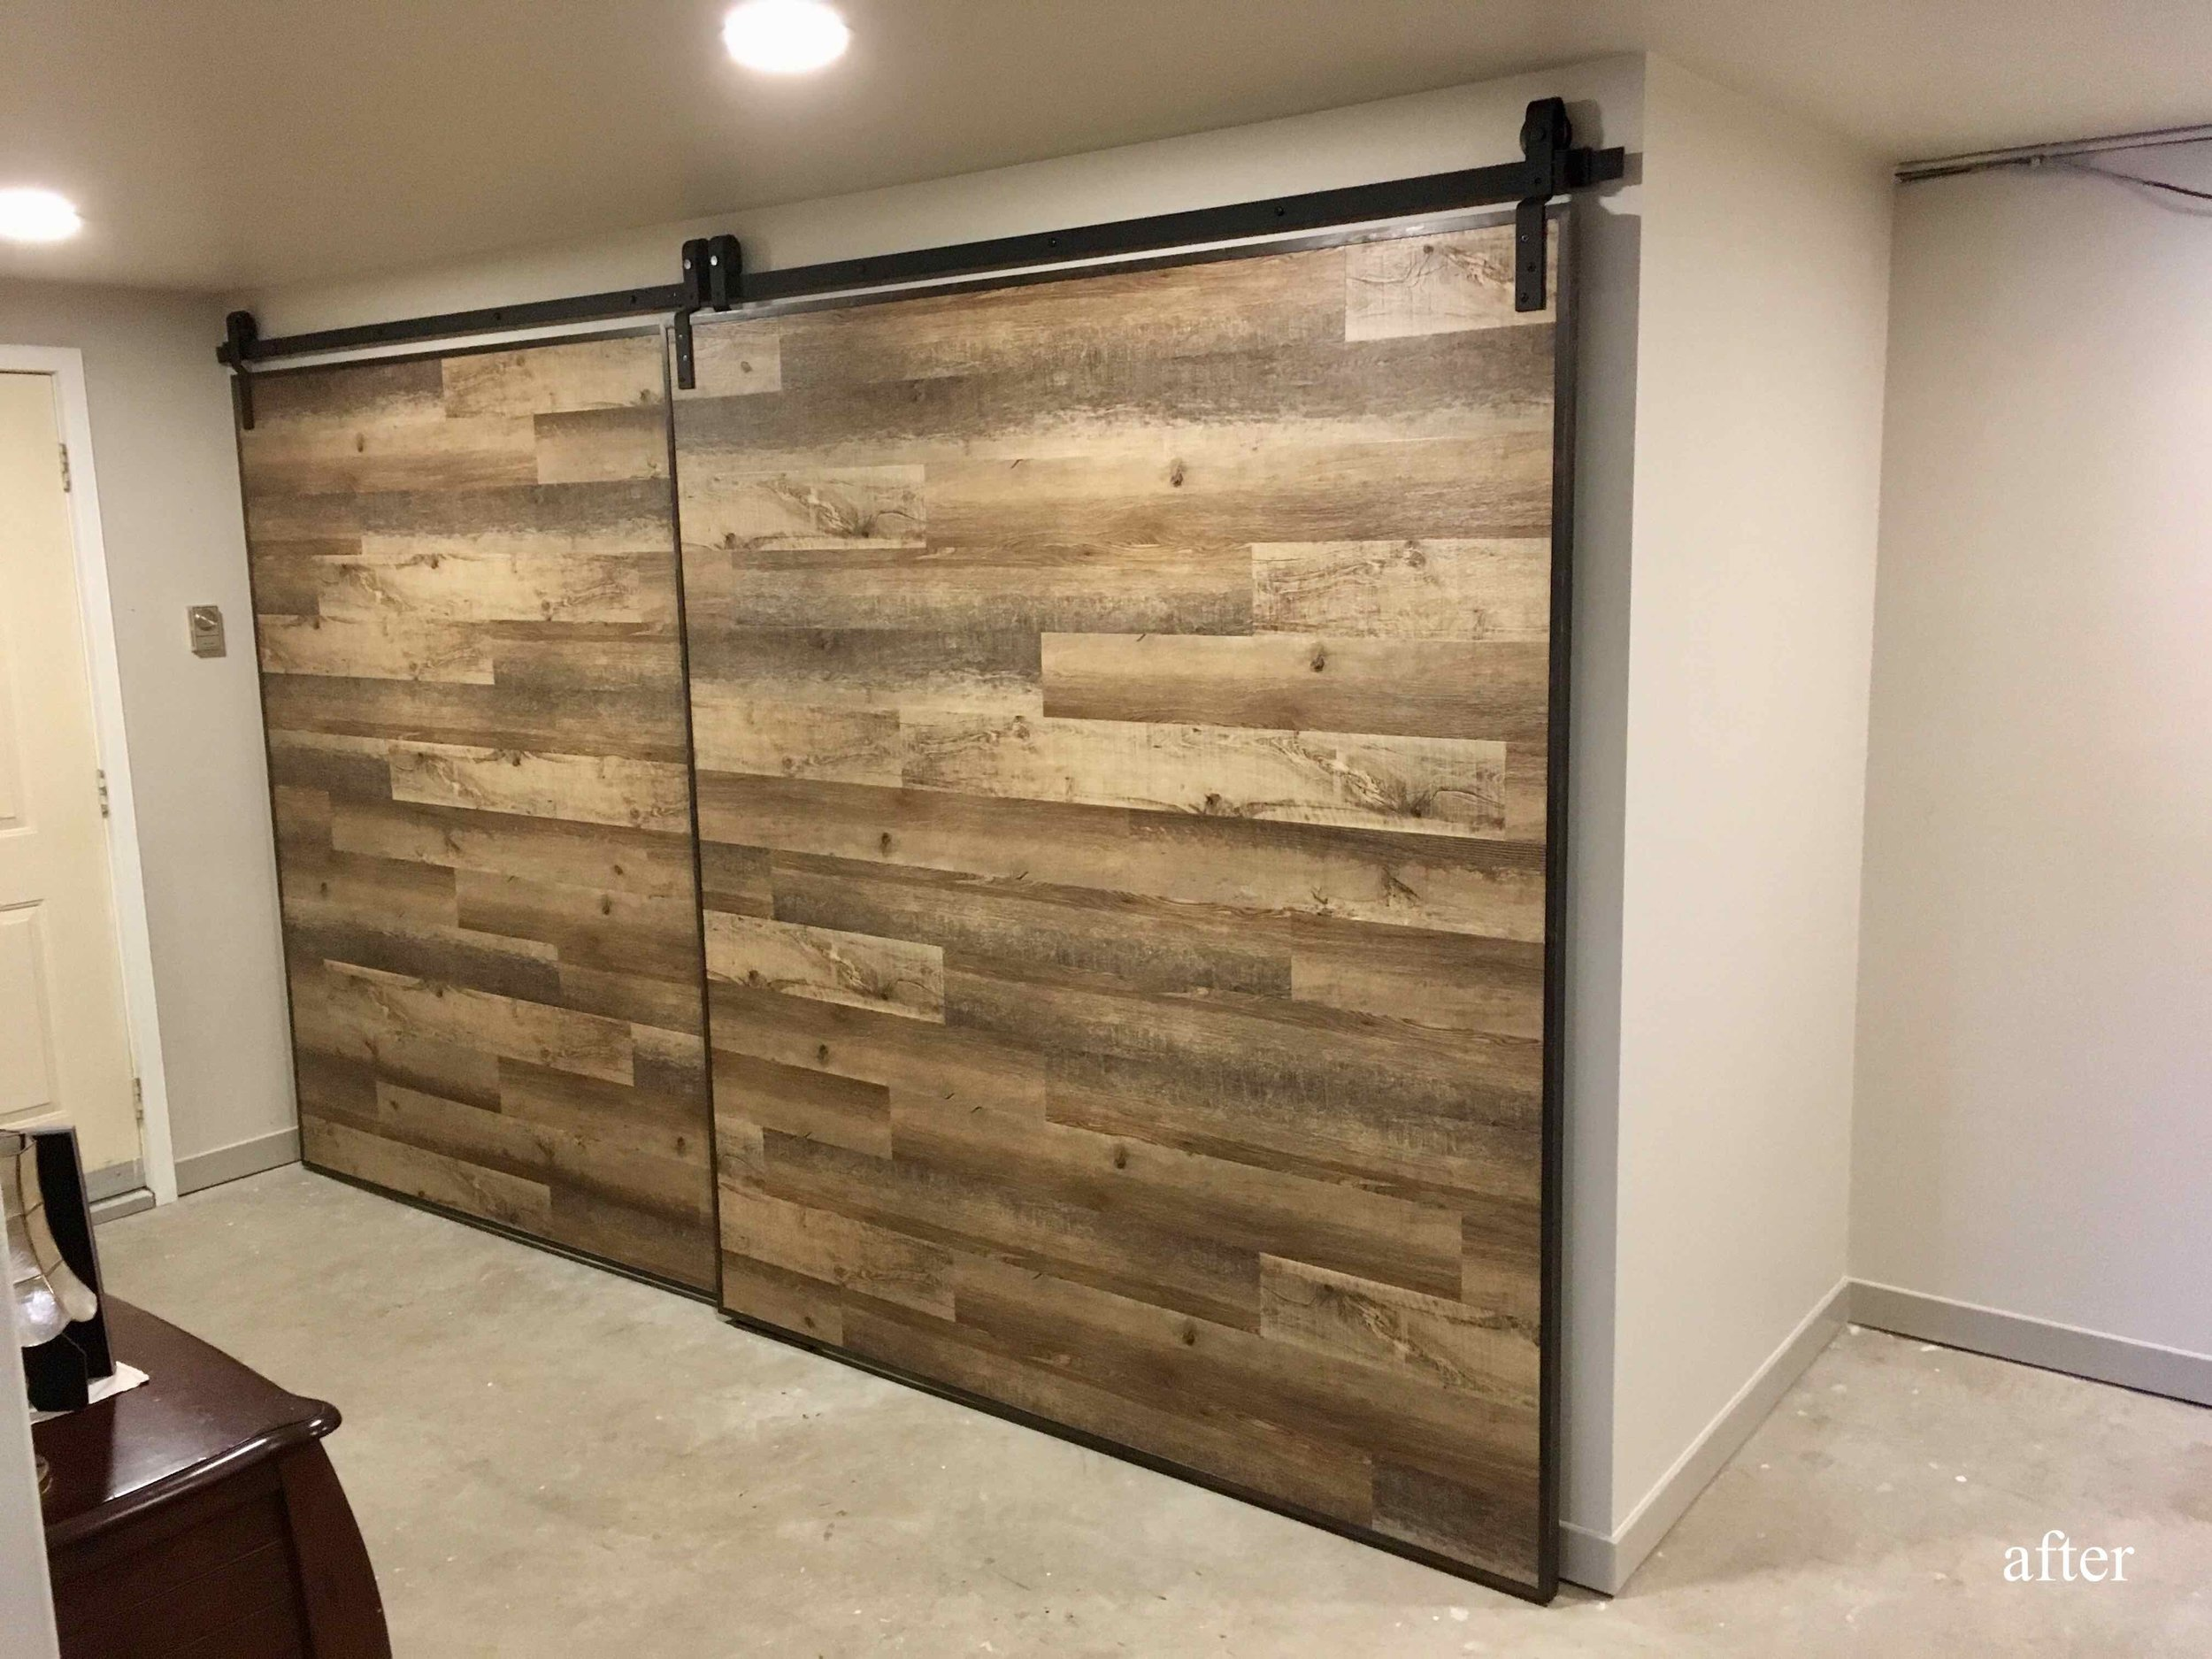 Custom barn doors for basement storage room in the East Kootenays.